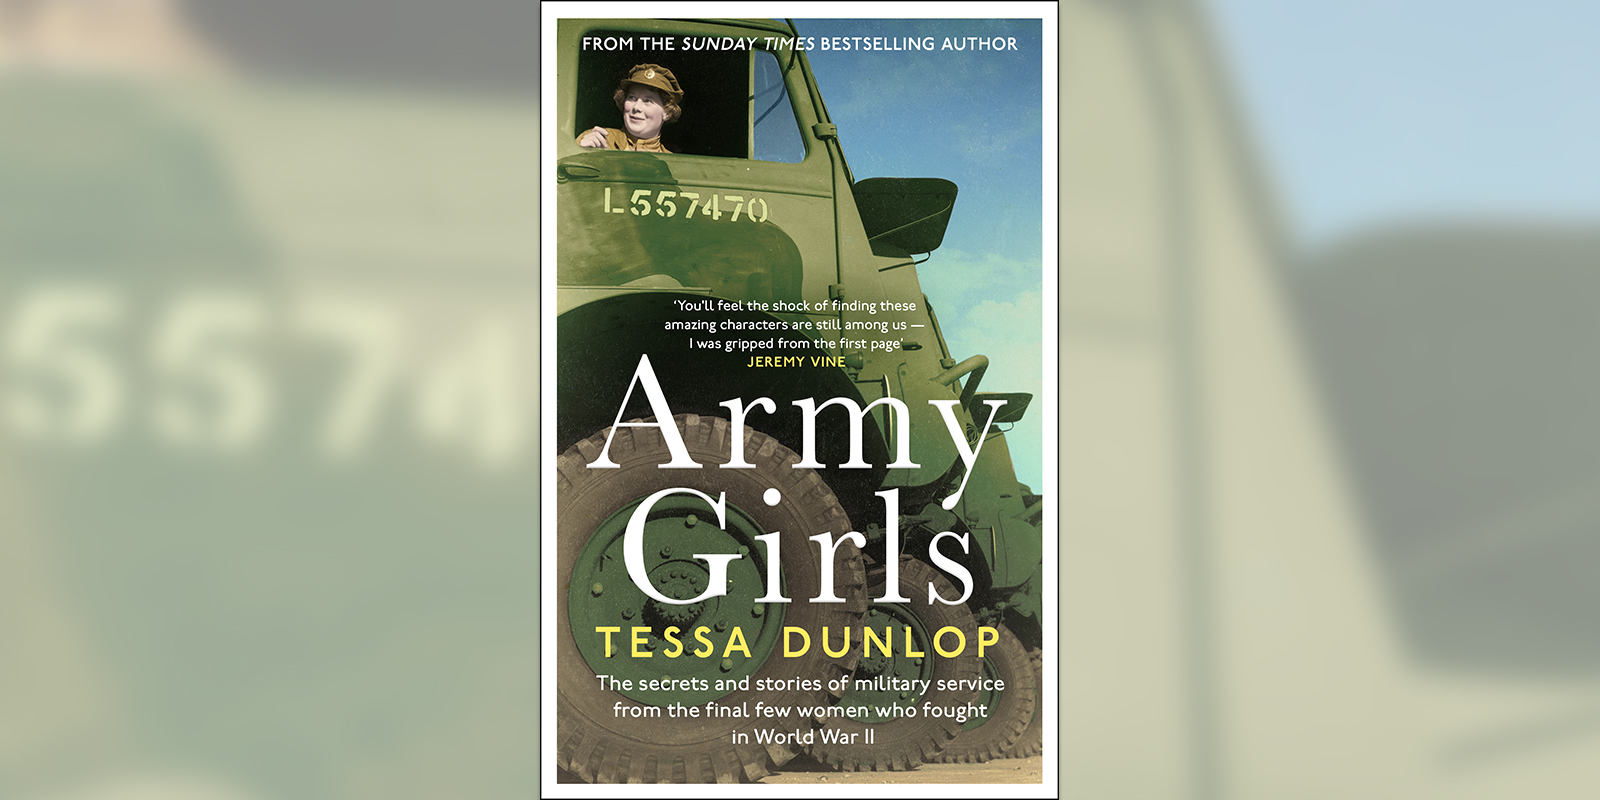 'Army Girls' book cover